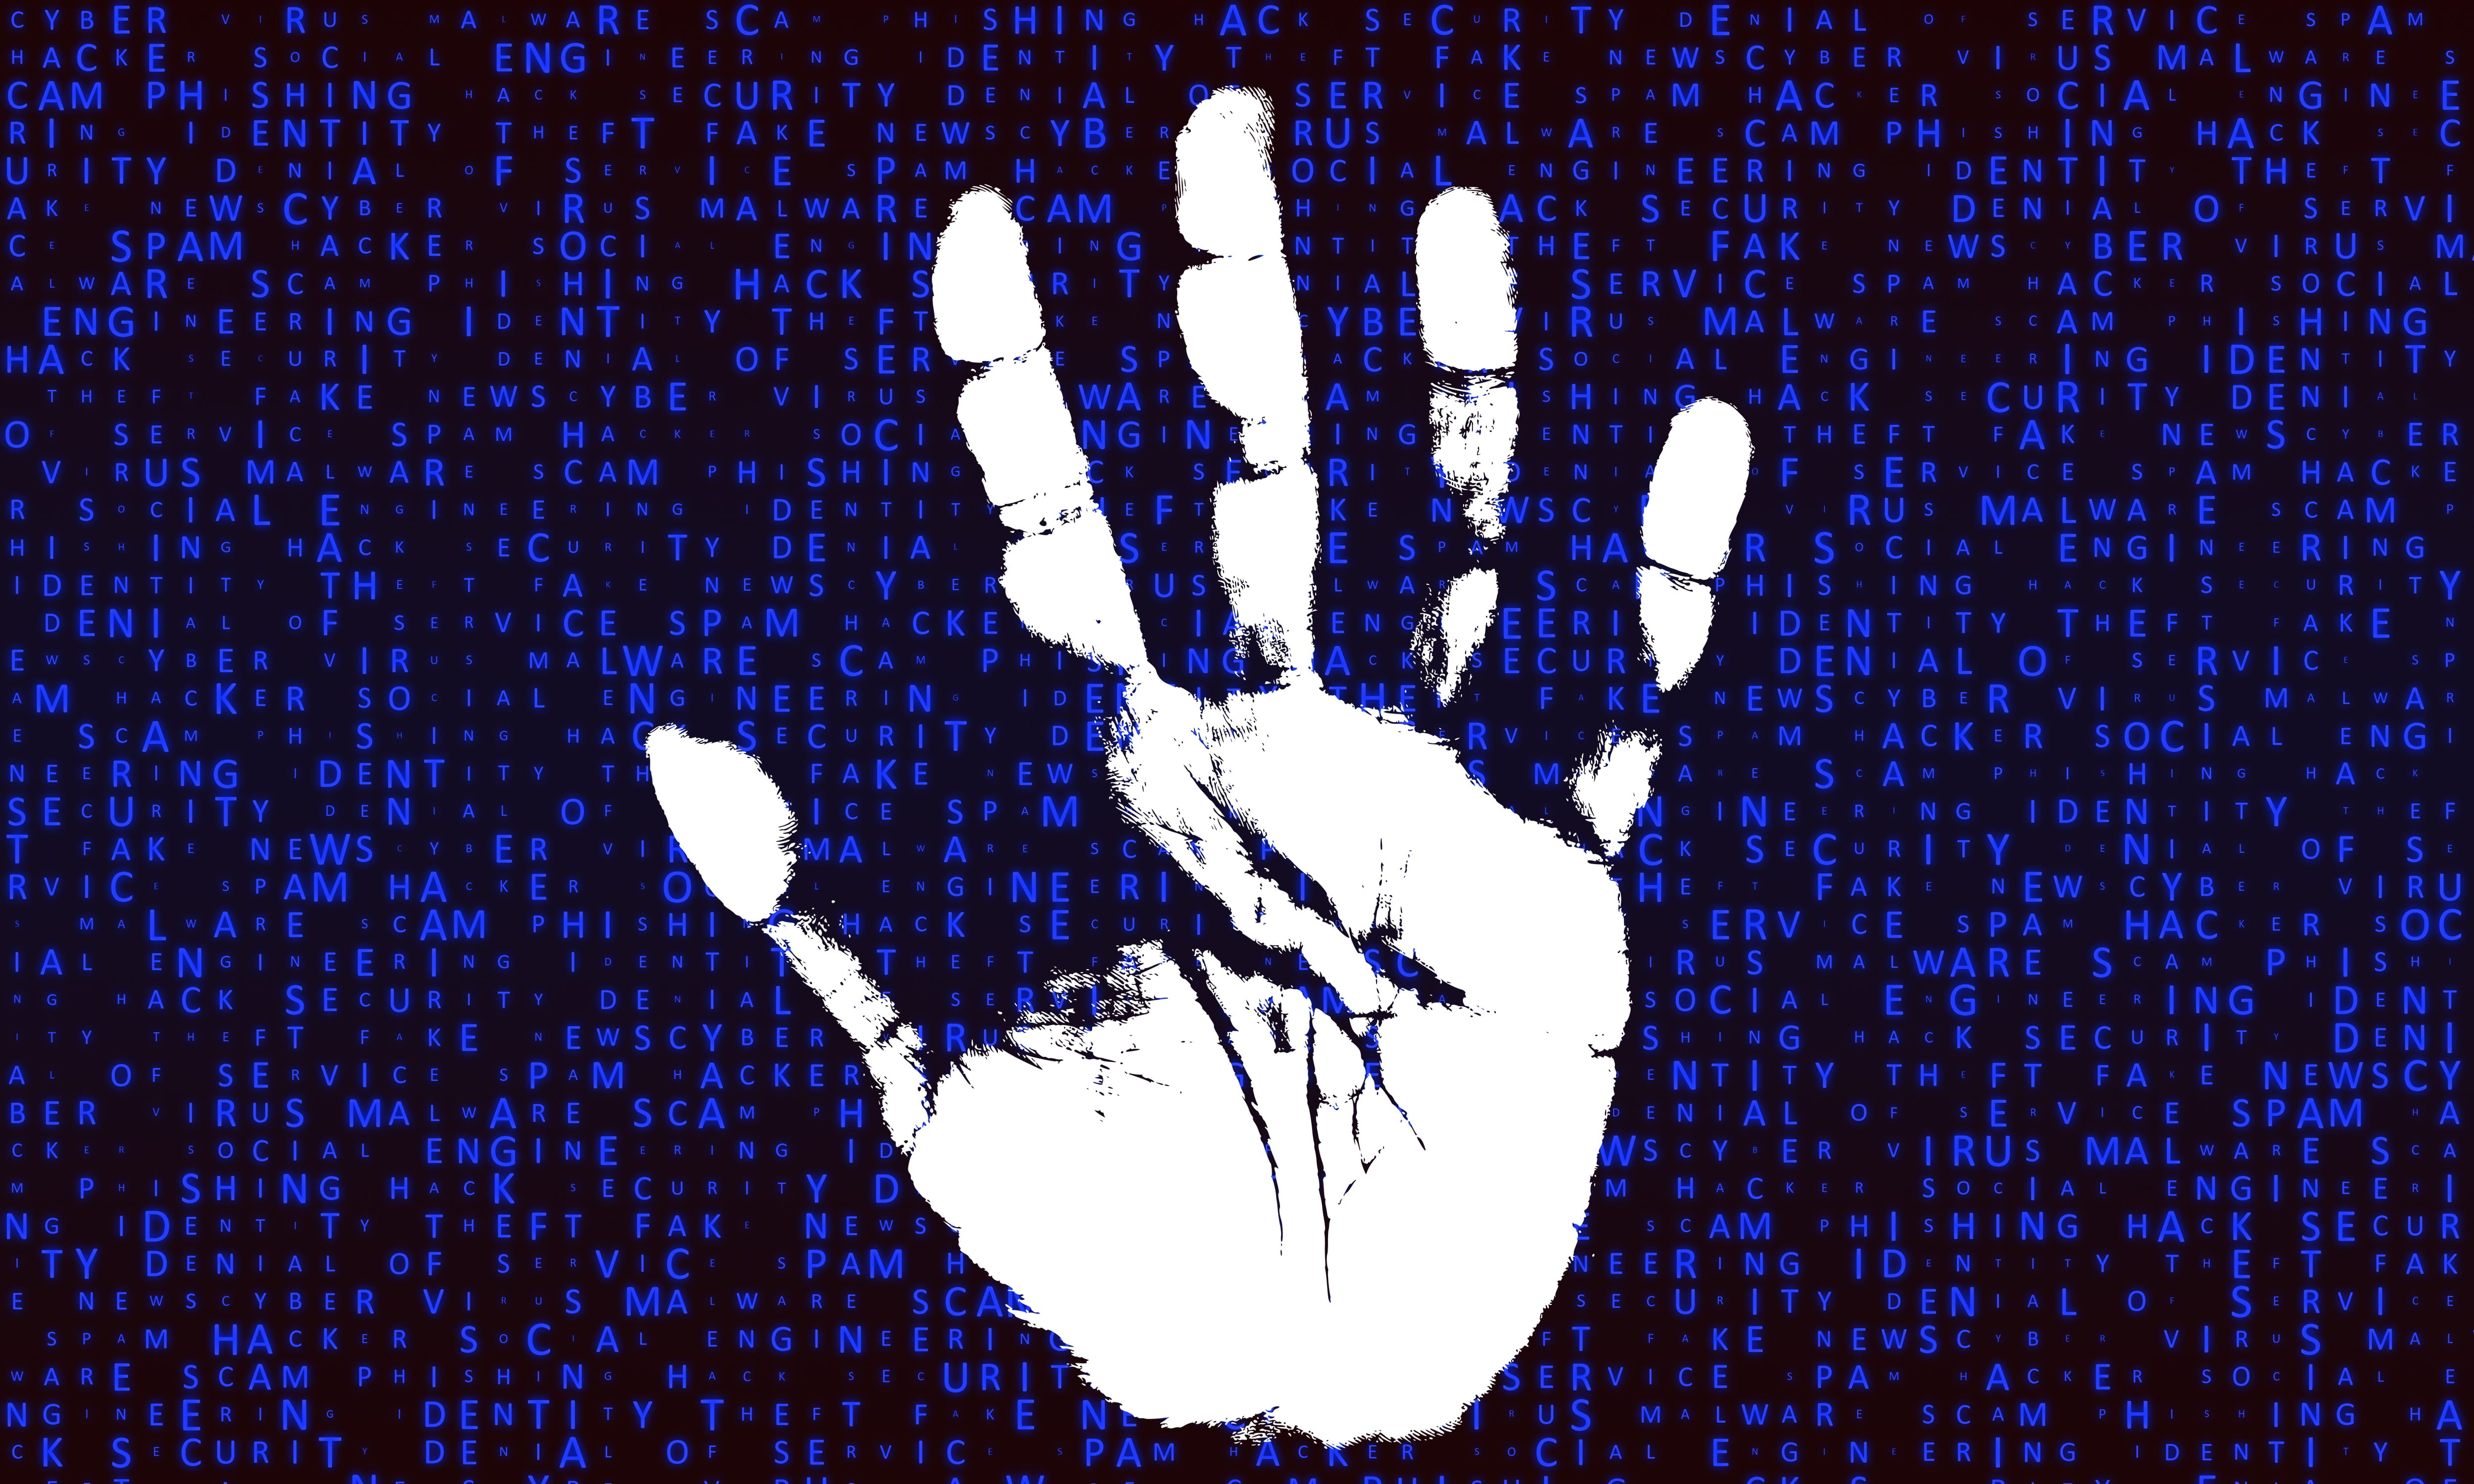 Identity theft image of hand and computer code